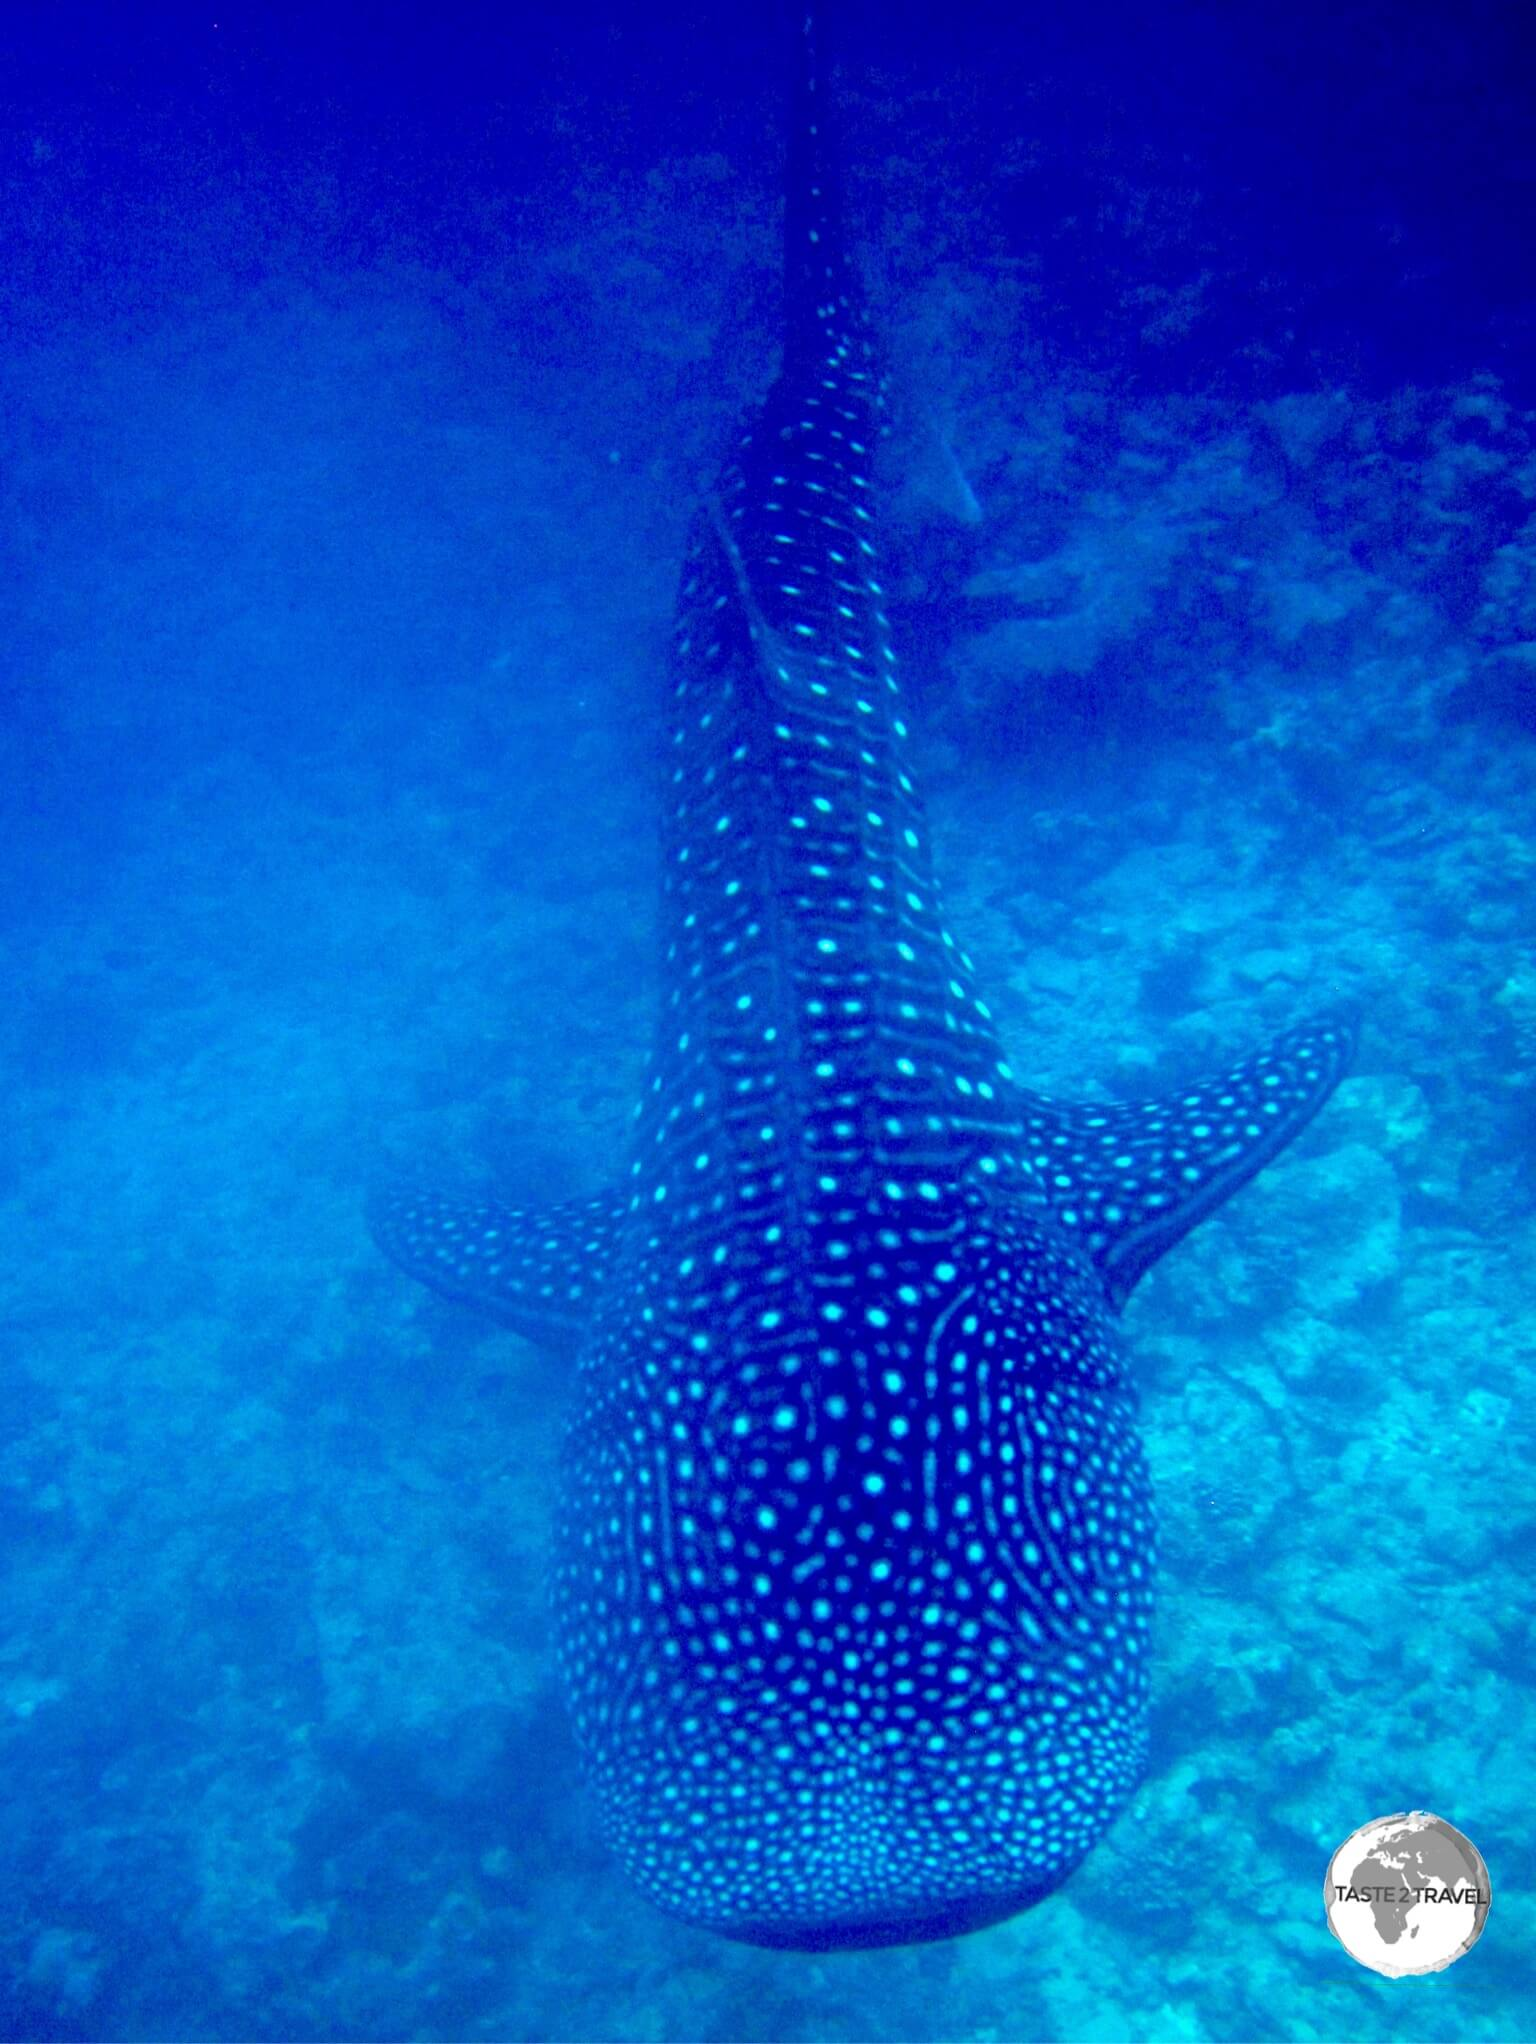 Snorkeling with a majestic Whale Shark is an unforgettable experience.